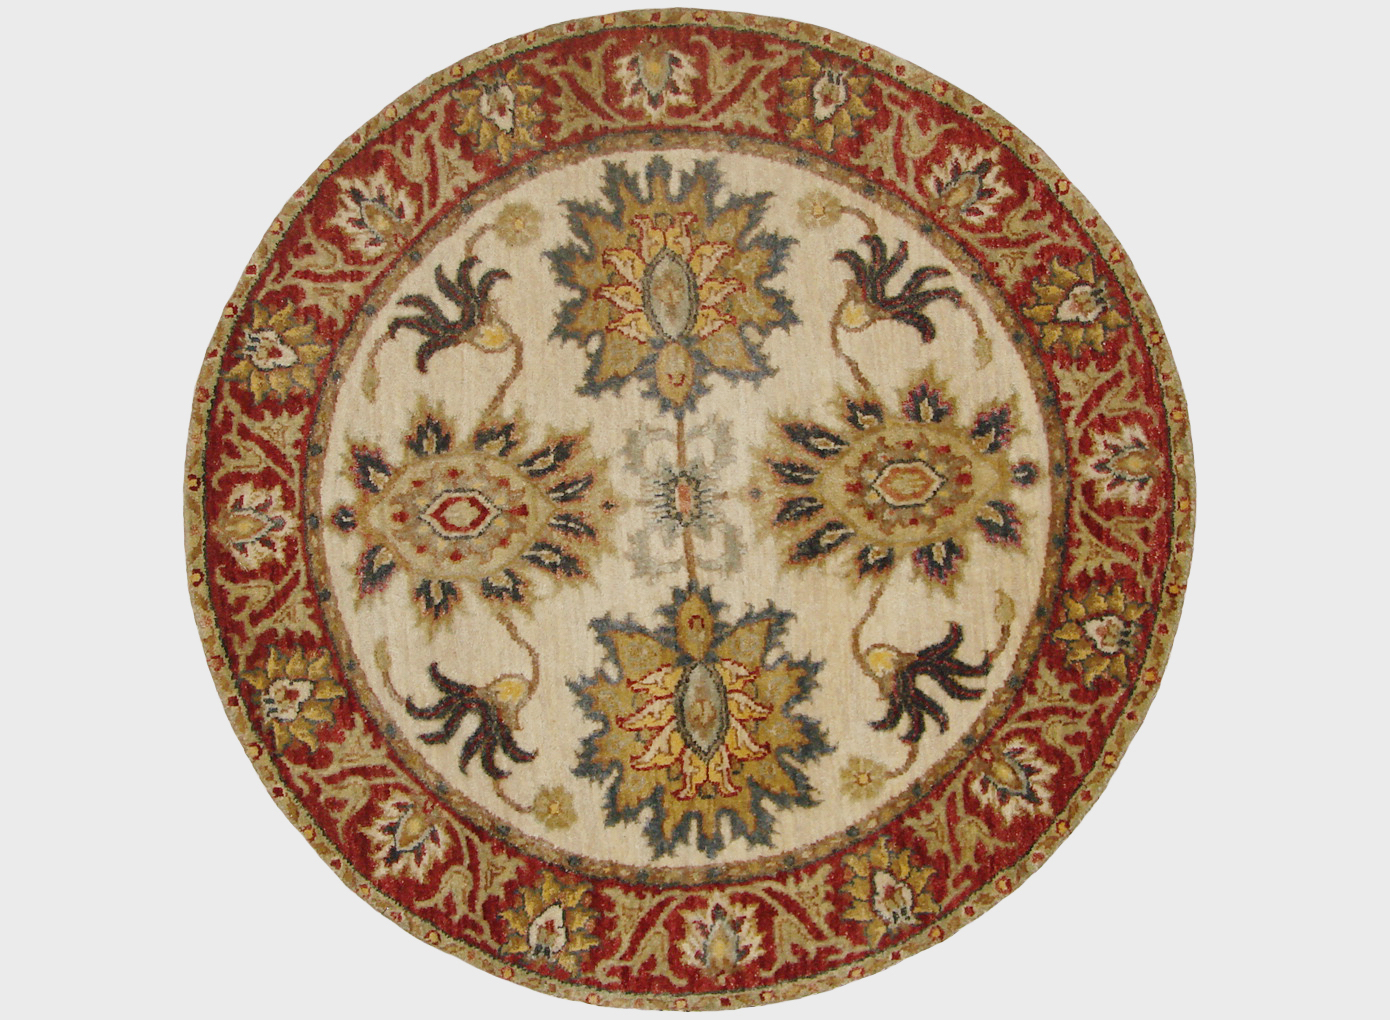 3 ft. Round & Square Traditional Hand Knotted Wool Area Rug - MR19421